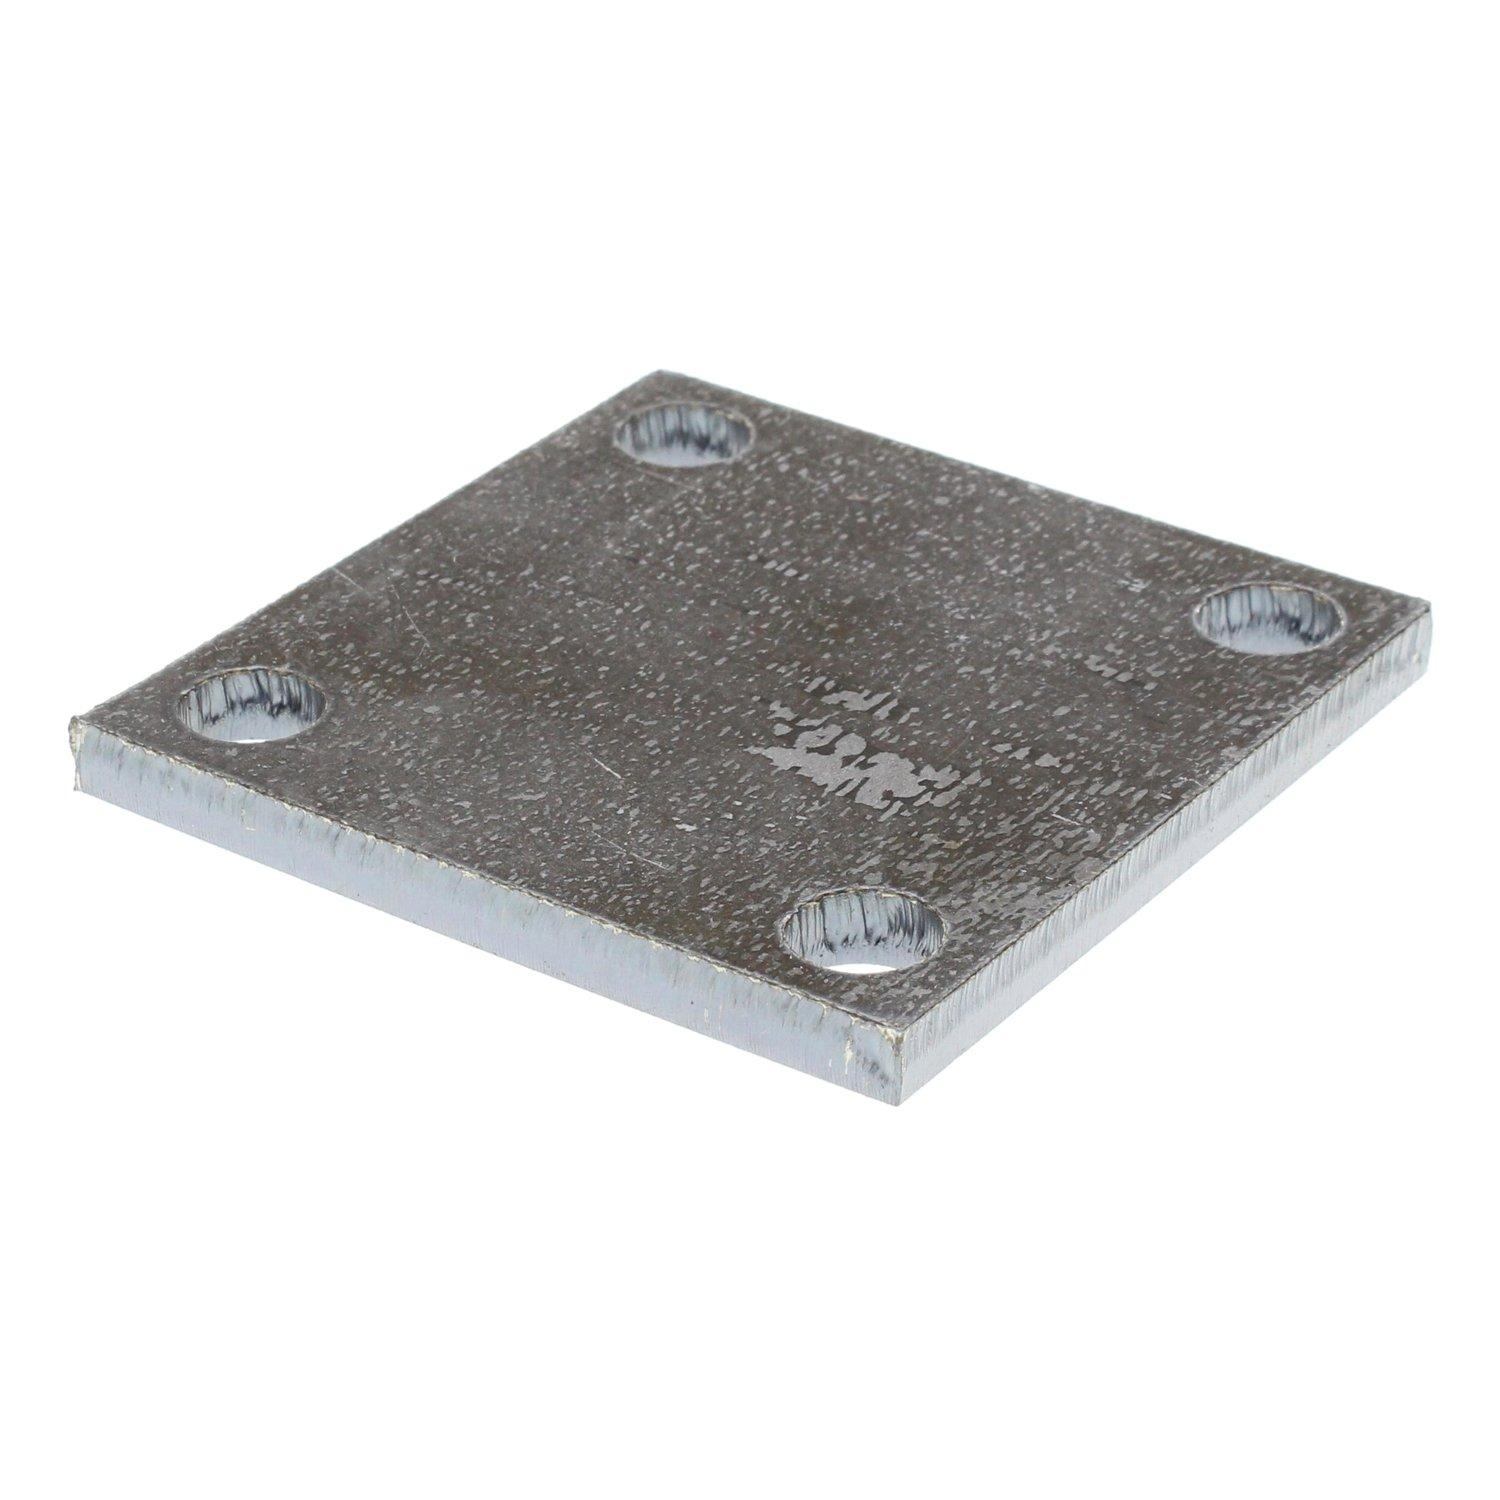 CLEVELAND PLATE BLOCKOFF HEATER HOLE/SLWCO